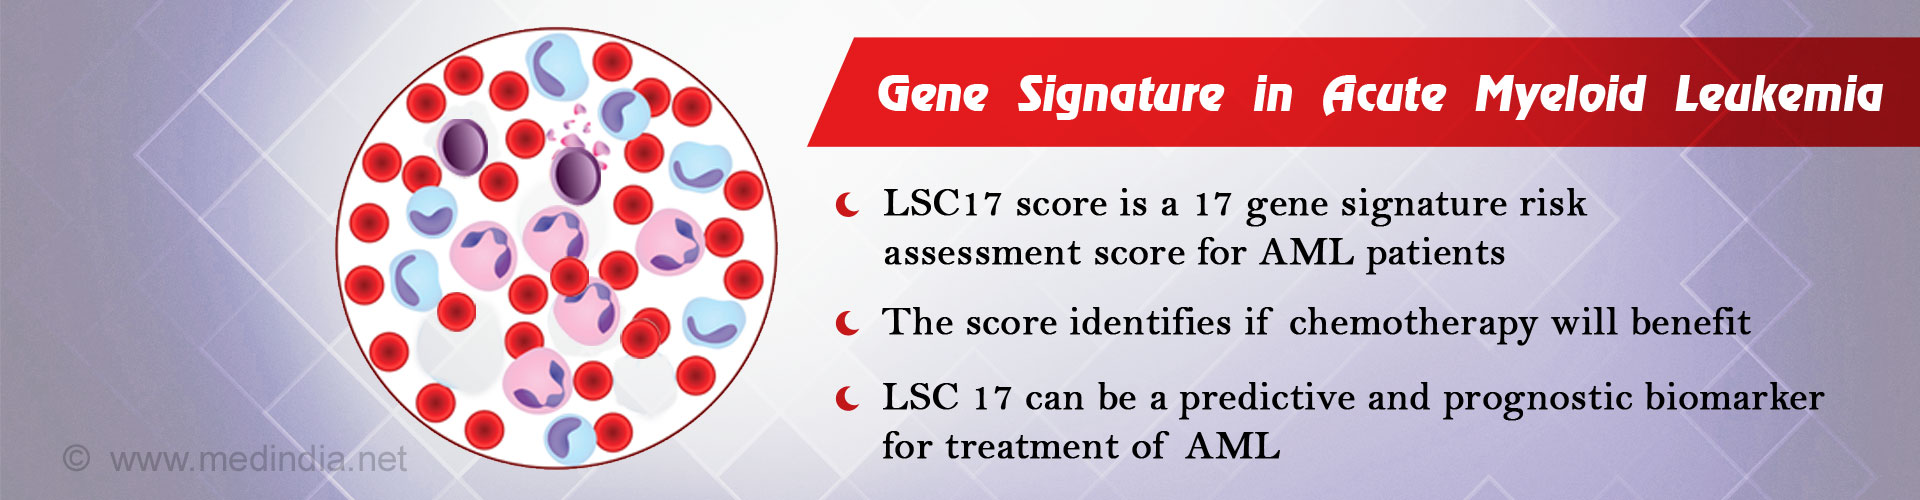 Gene Signature Developed for Predictive and Prognostic Biomarker for Acute Myeloid Leukemia Treatment